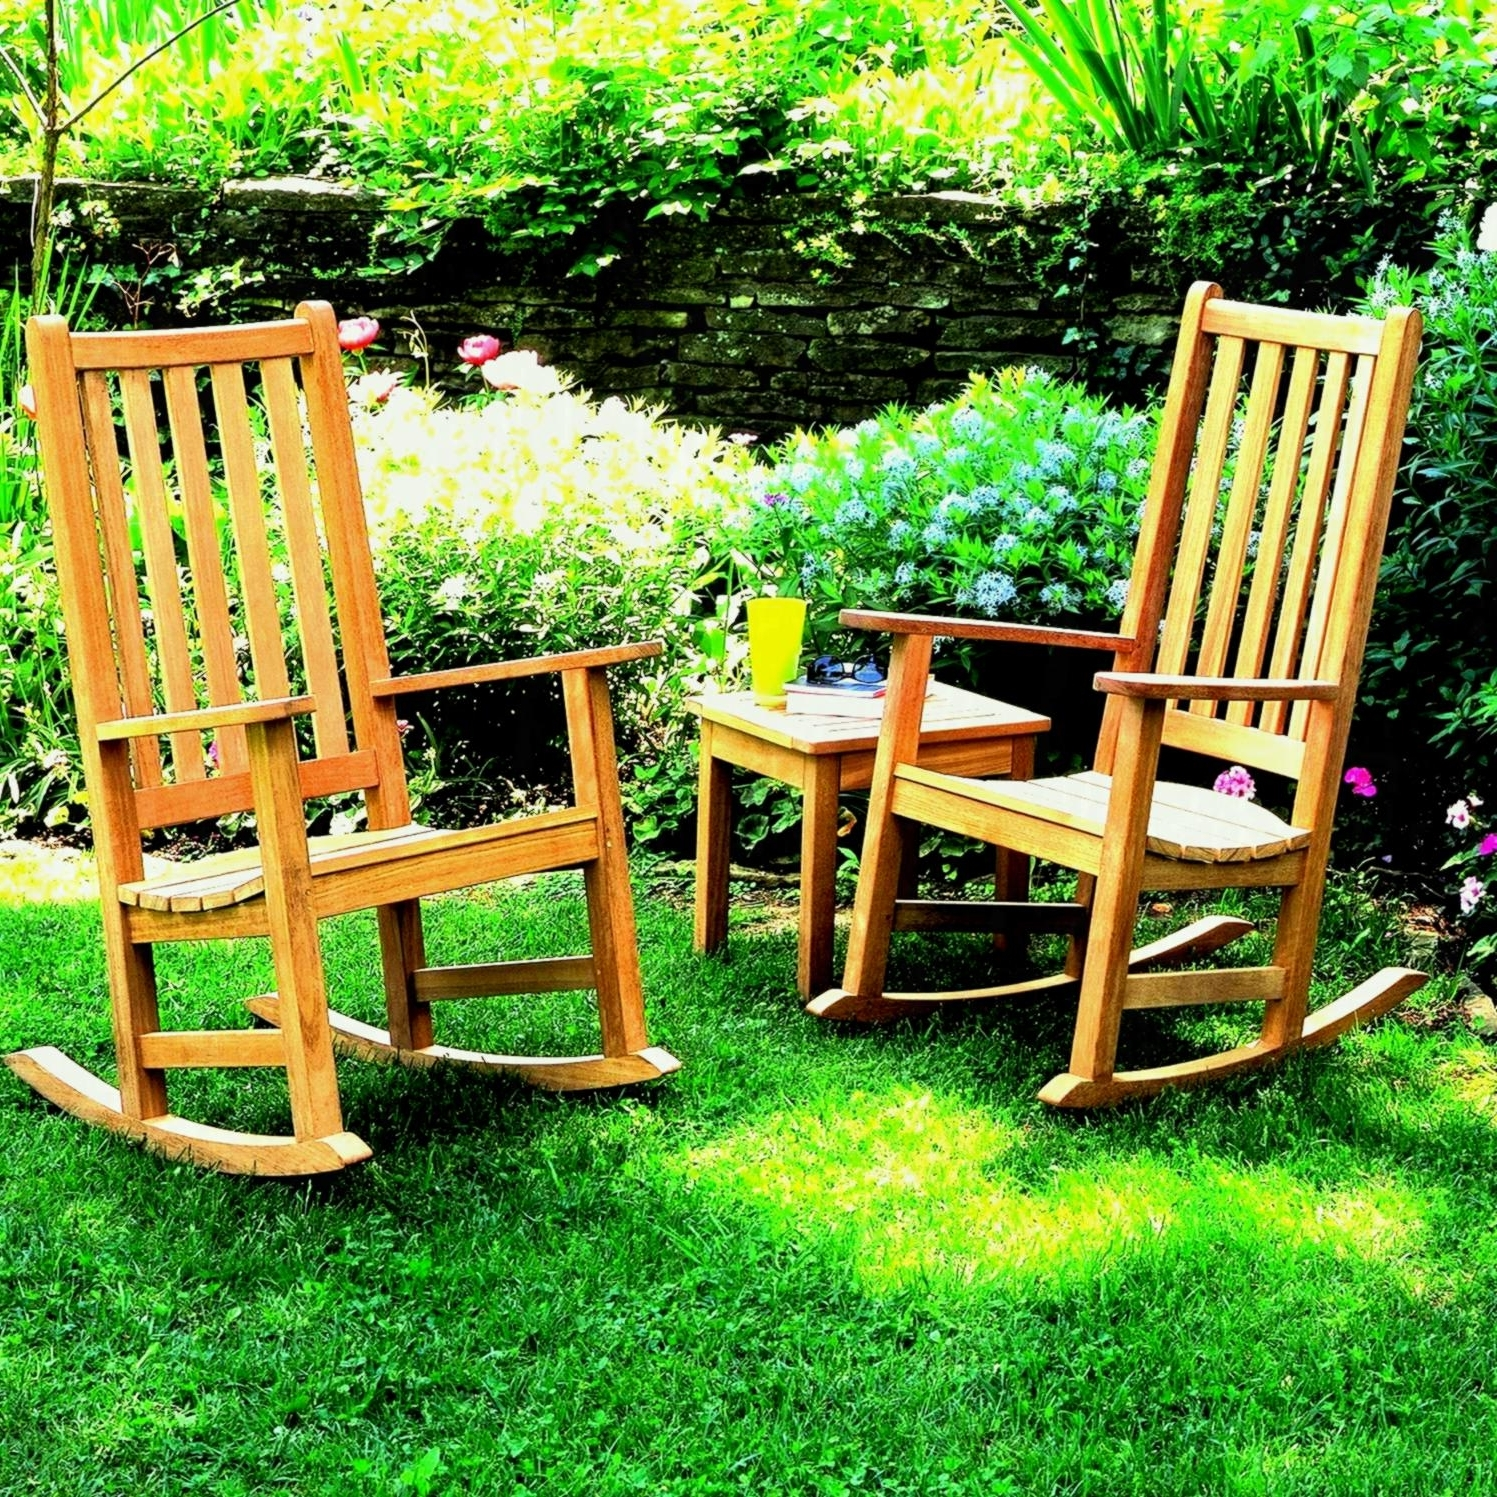 Favorite Patio Rocking Chairs Outdoor Furniture Garden Lawn Back To Your Old Inside Rocking Chairs For Garden (View 18 of 20)